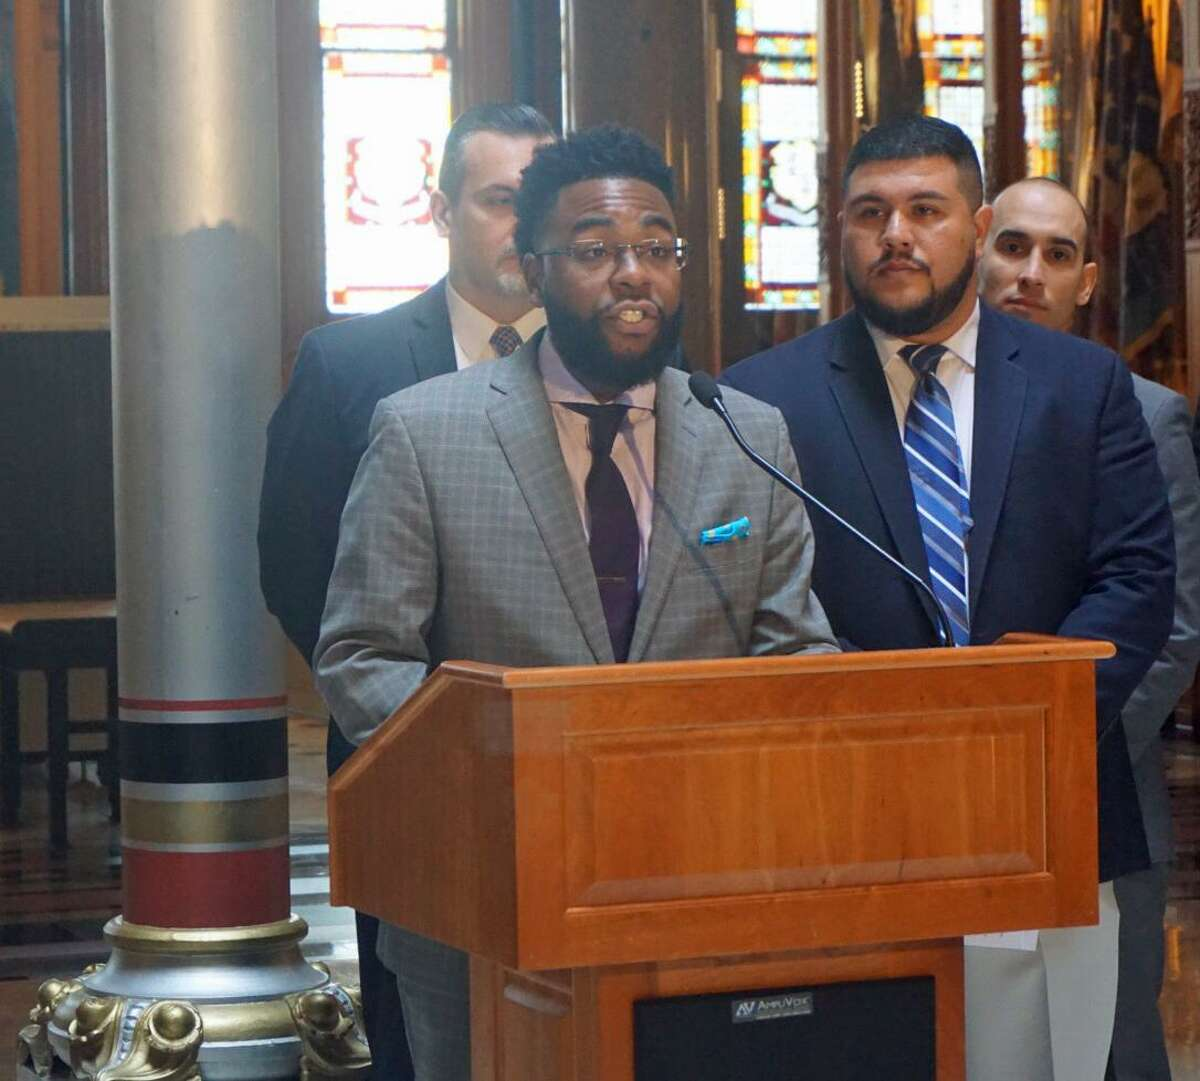 State Rep. Brandon McGee, D-Hartford, vice chair of the Black and Puerto Rican Caucus, outlined the caucus's legislative priorities with (right) chair of the caucus Rep. Christopher Rosario, D-Bridgeport, at the Capitol in Hartford, Conn. on Monday, March 12, 2018.